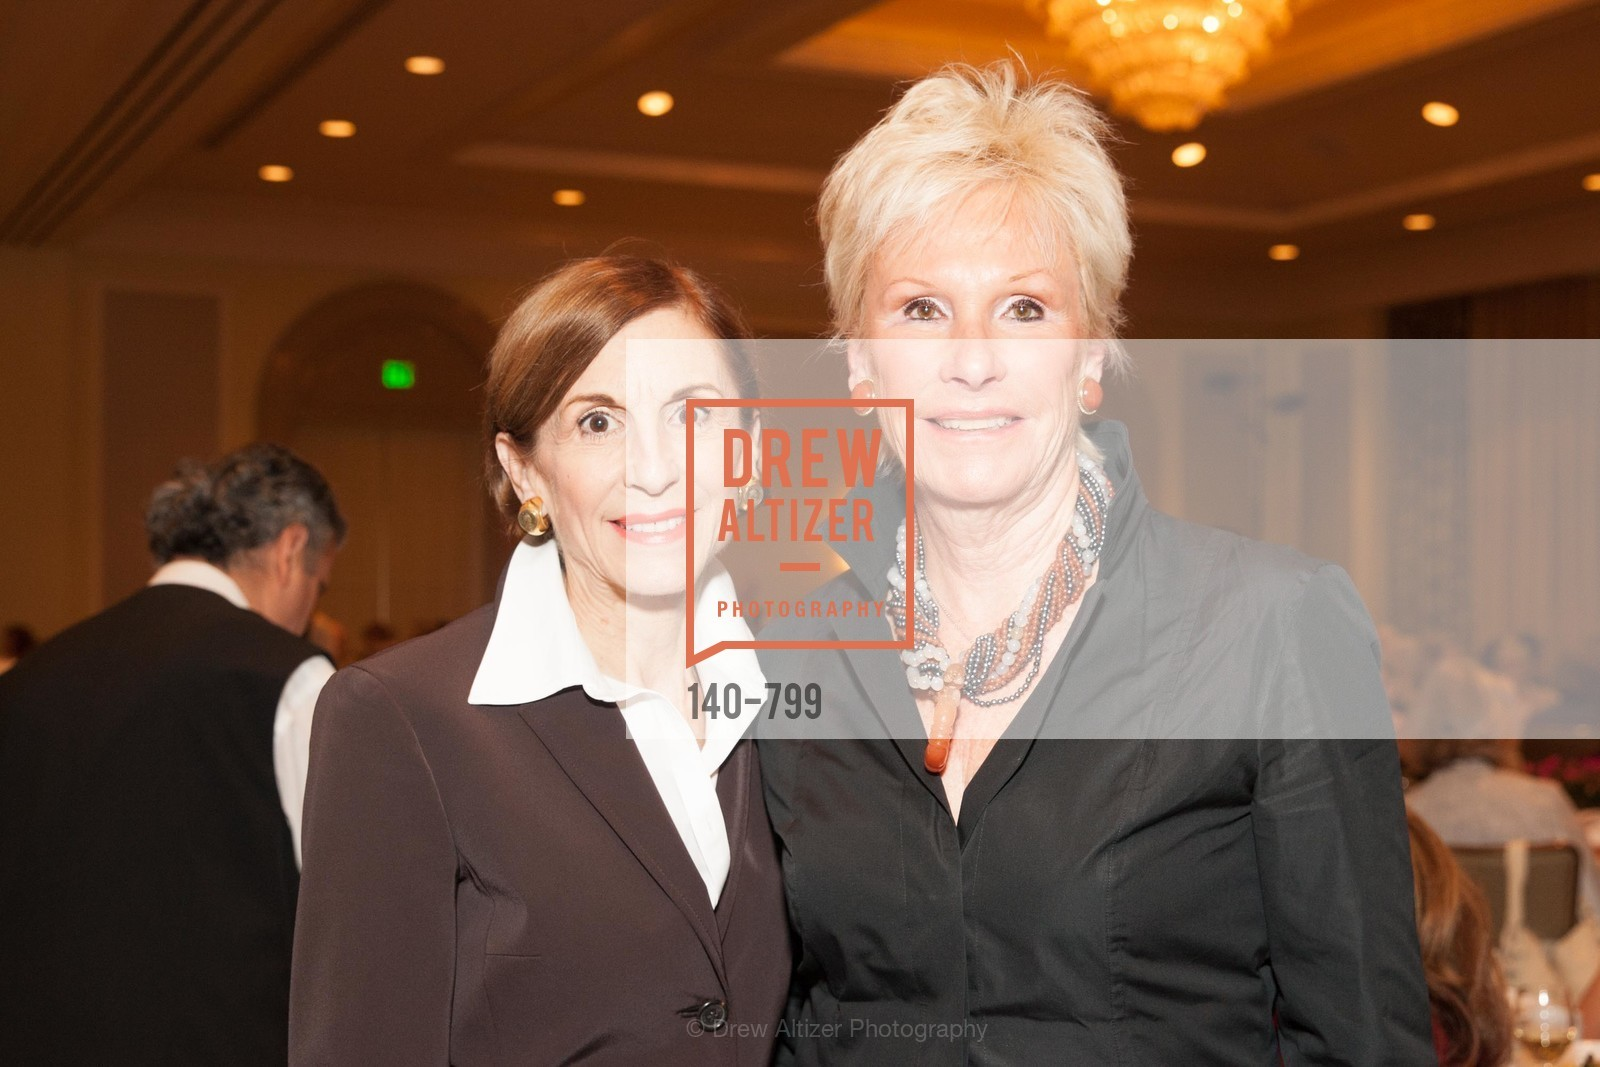 Marsha Munro, Carolyn Hansen, COMPASSION & CHOICES - Empowerment Luncheon, US, April 23rd, 2015,Drew Altizer, Drew Altizer Photography, full-service agency, private events, San Francisco photographer, photographer california